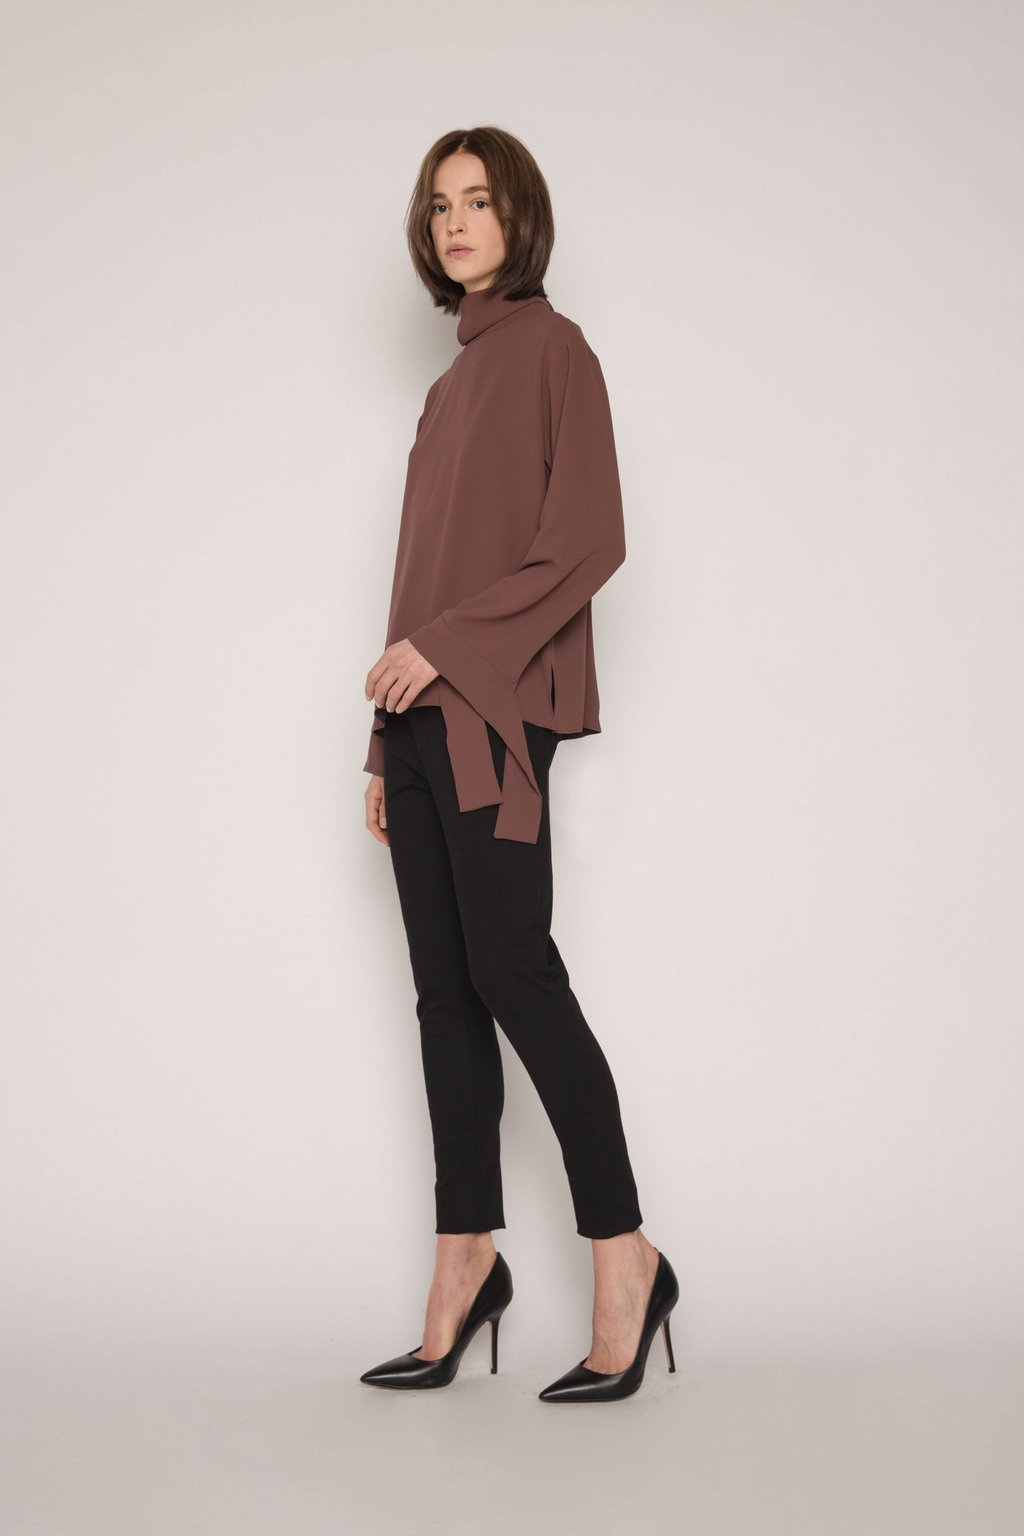 Blouse H323 Brown 5